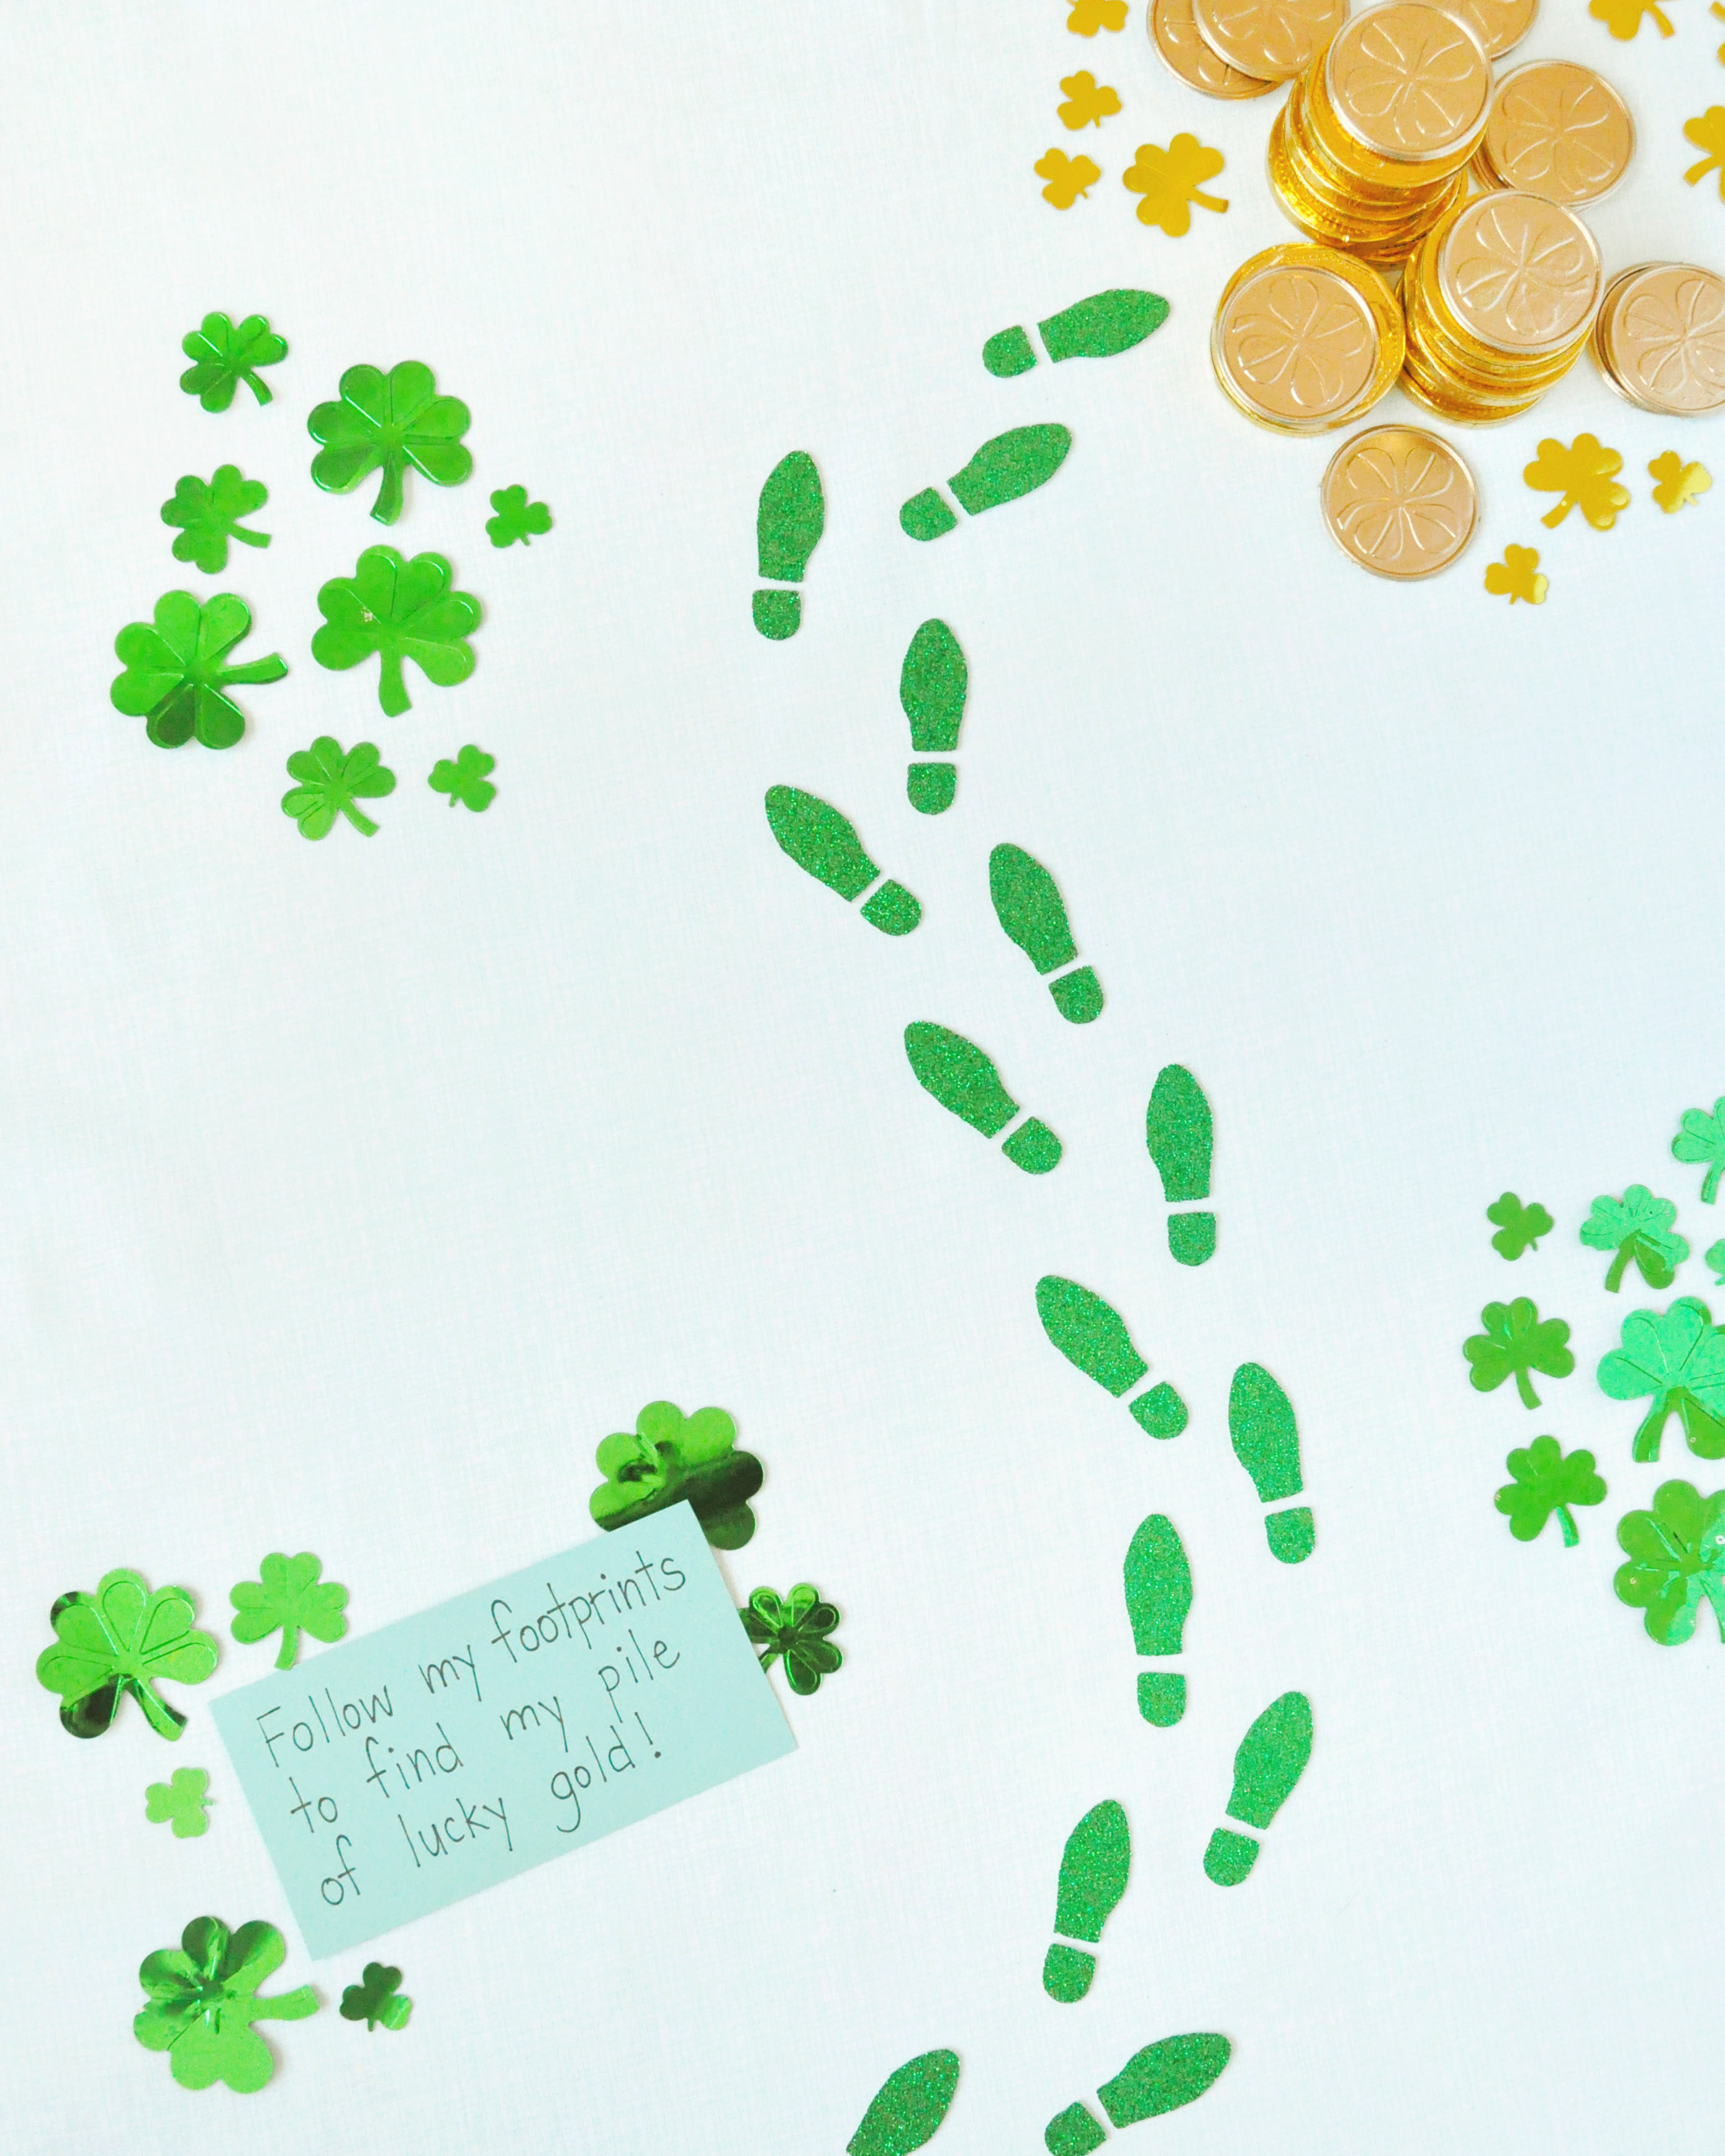 Office St Patrick's Day Ideas from static.onecms.io